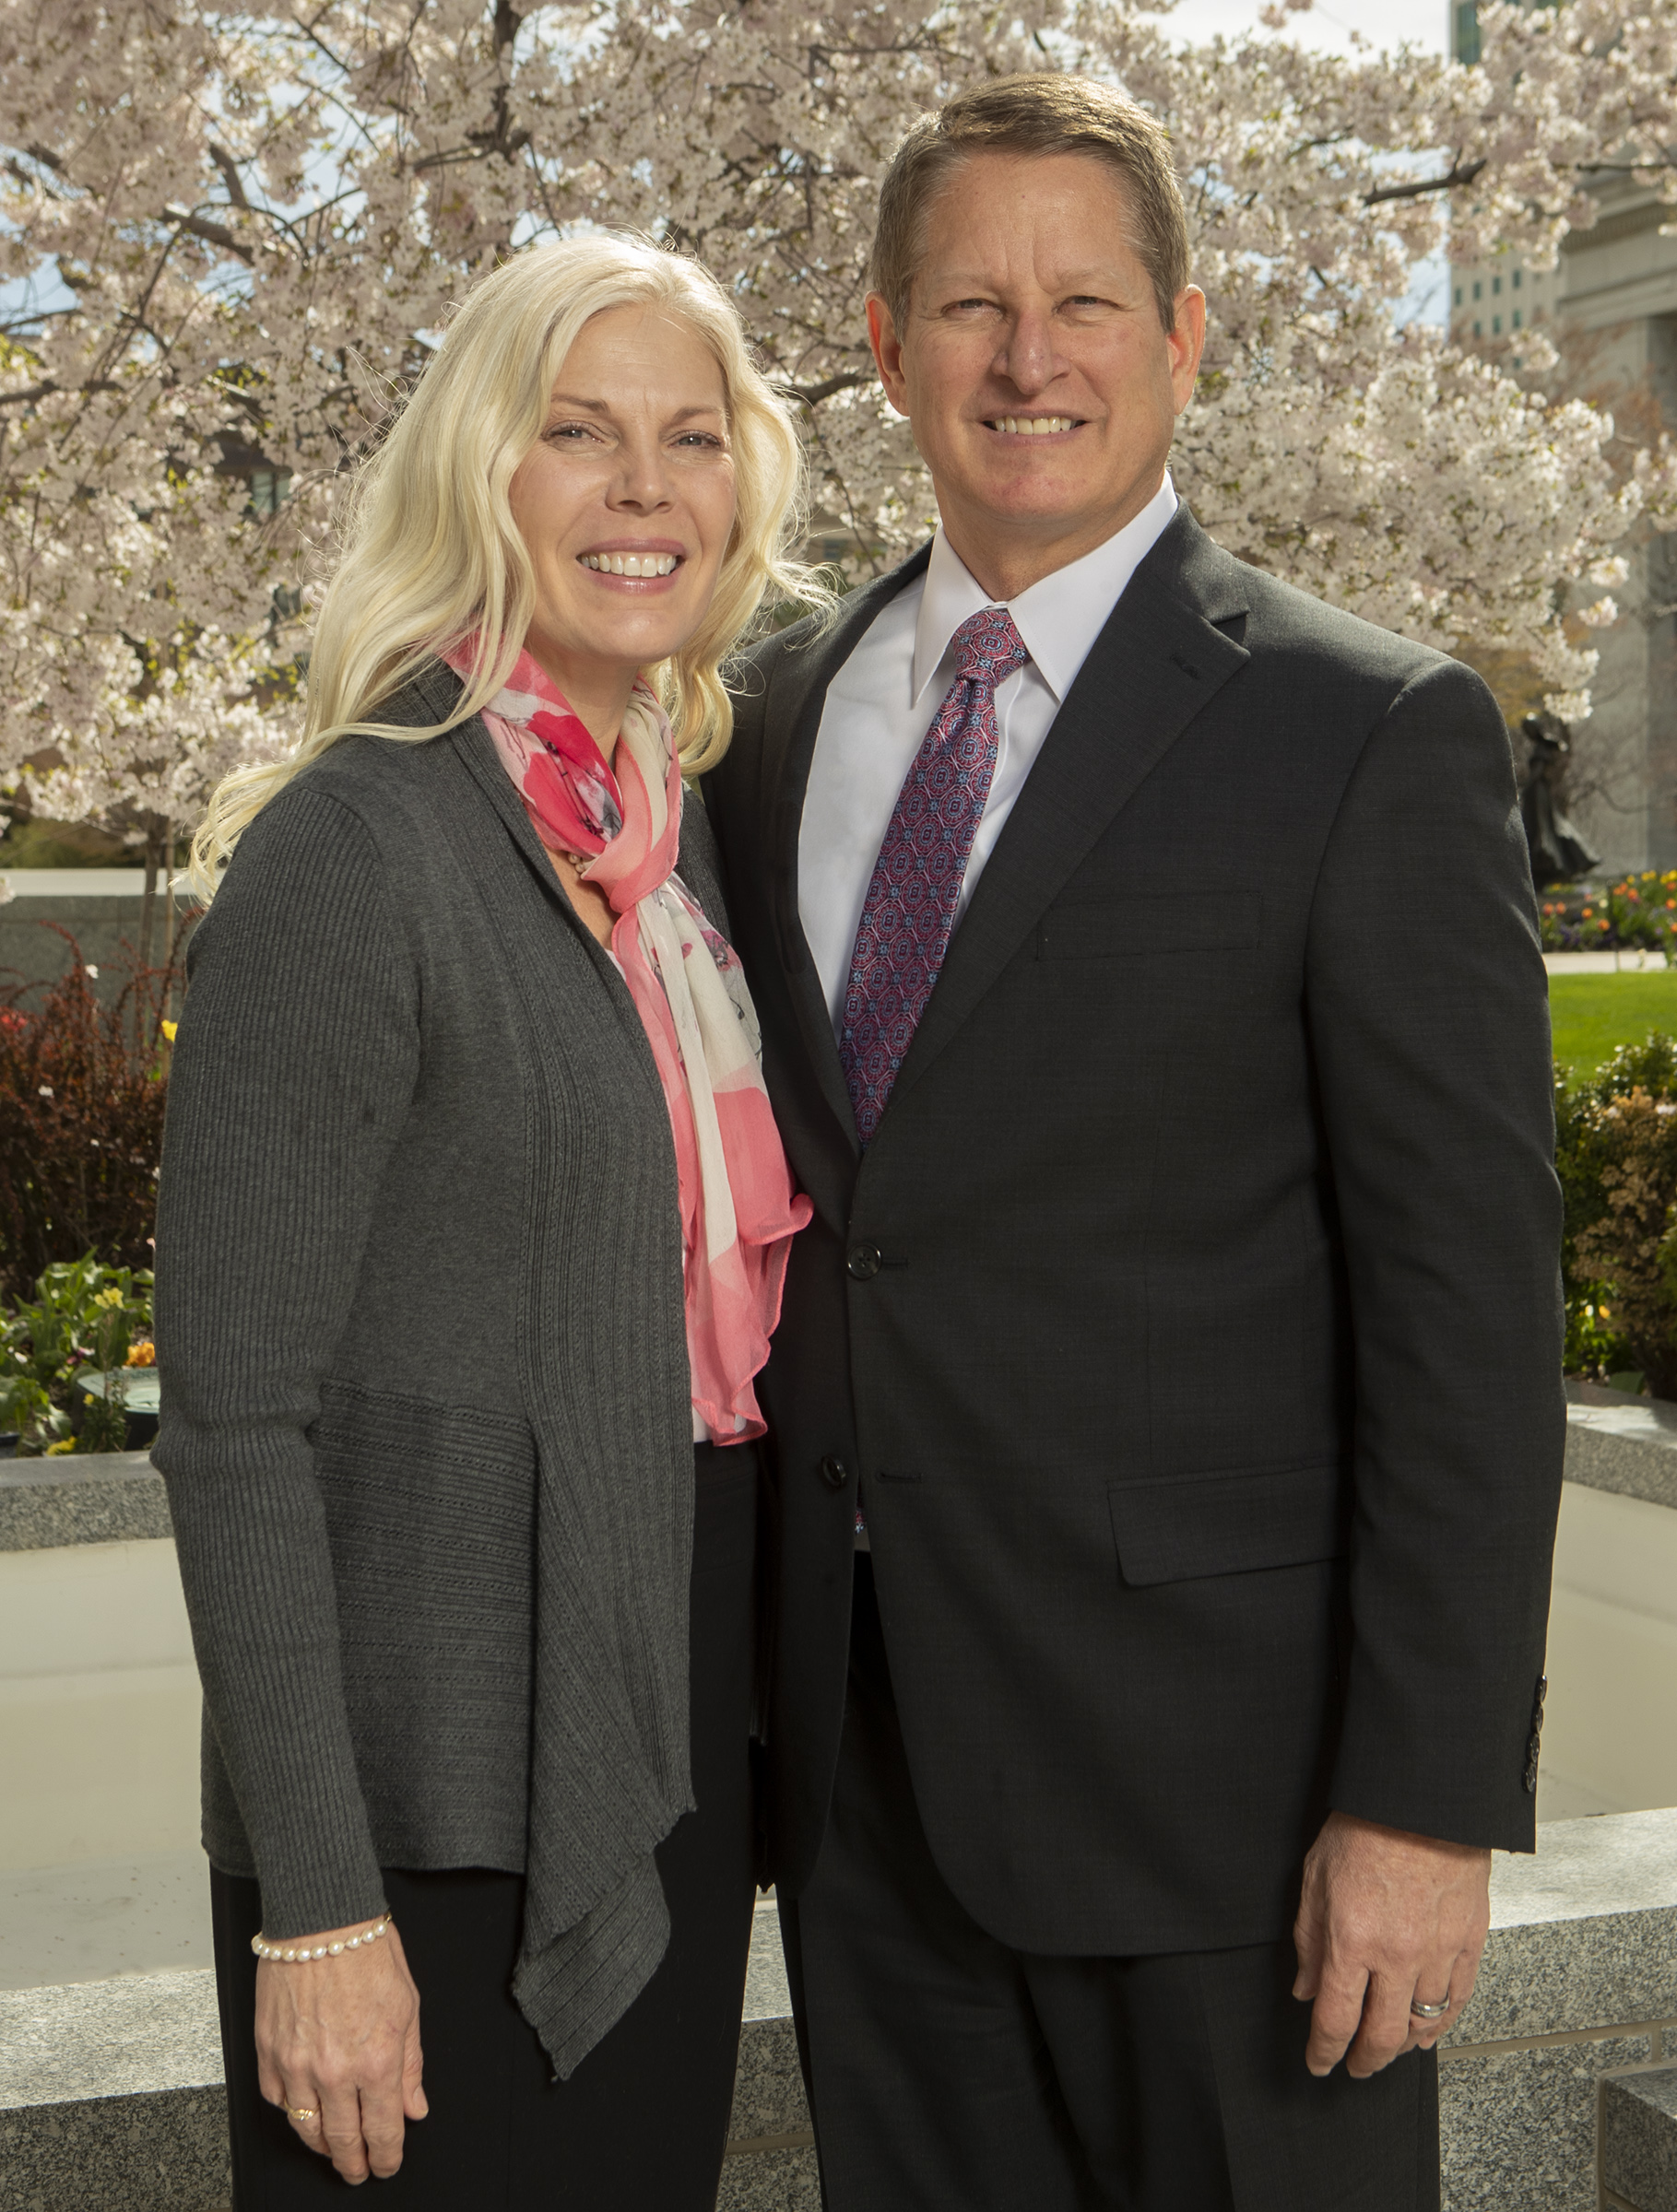 Sister Debbra Kingsbury McCune and Elder John A. McCune pose for a photo at the Church Office Building in Salt Lake City on Monday, April 8, 2019. Elder McCune was called to serve as a General Authority Seventy.